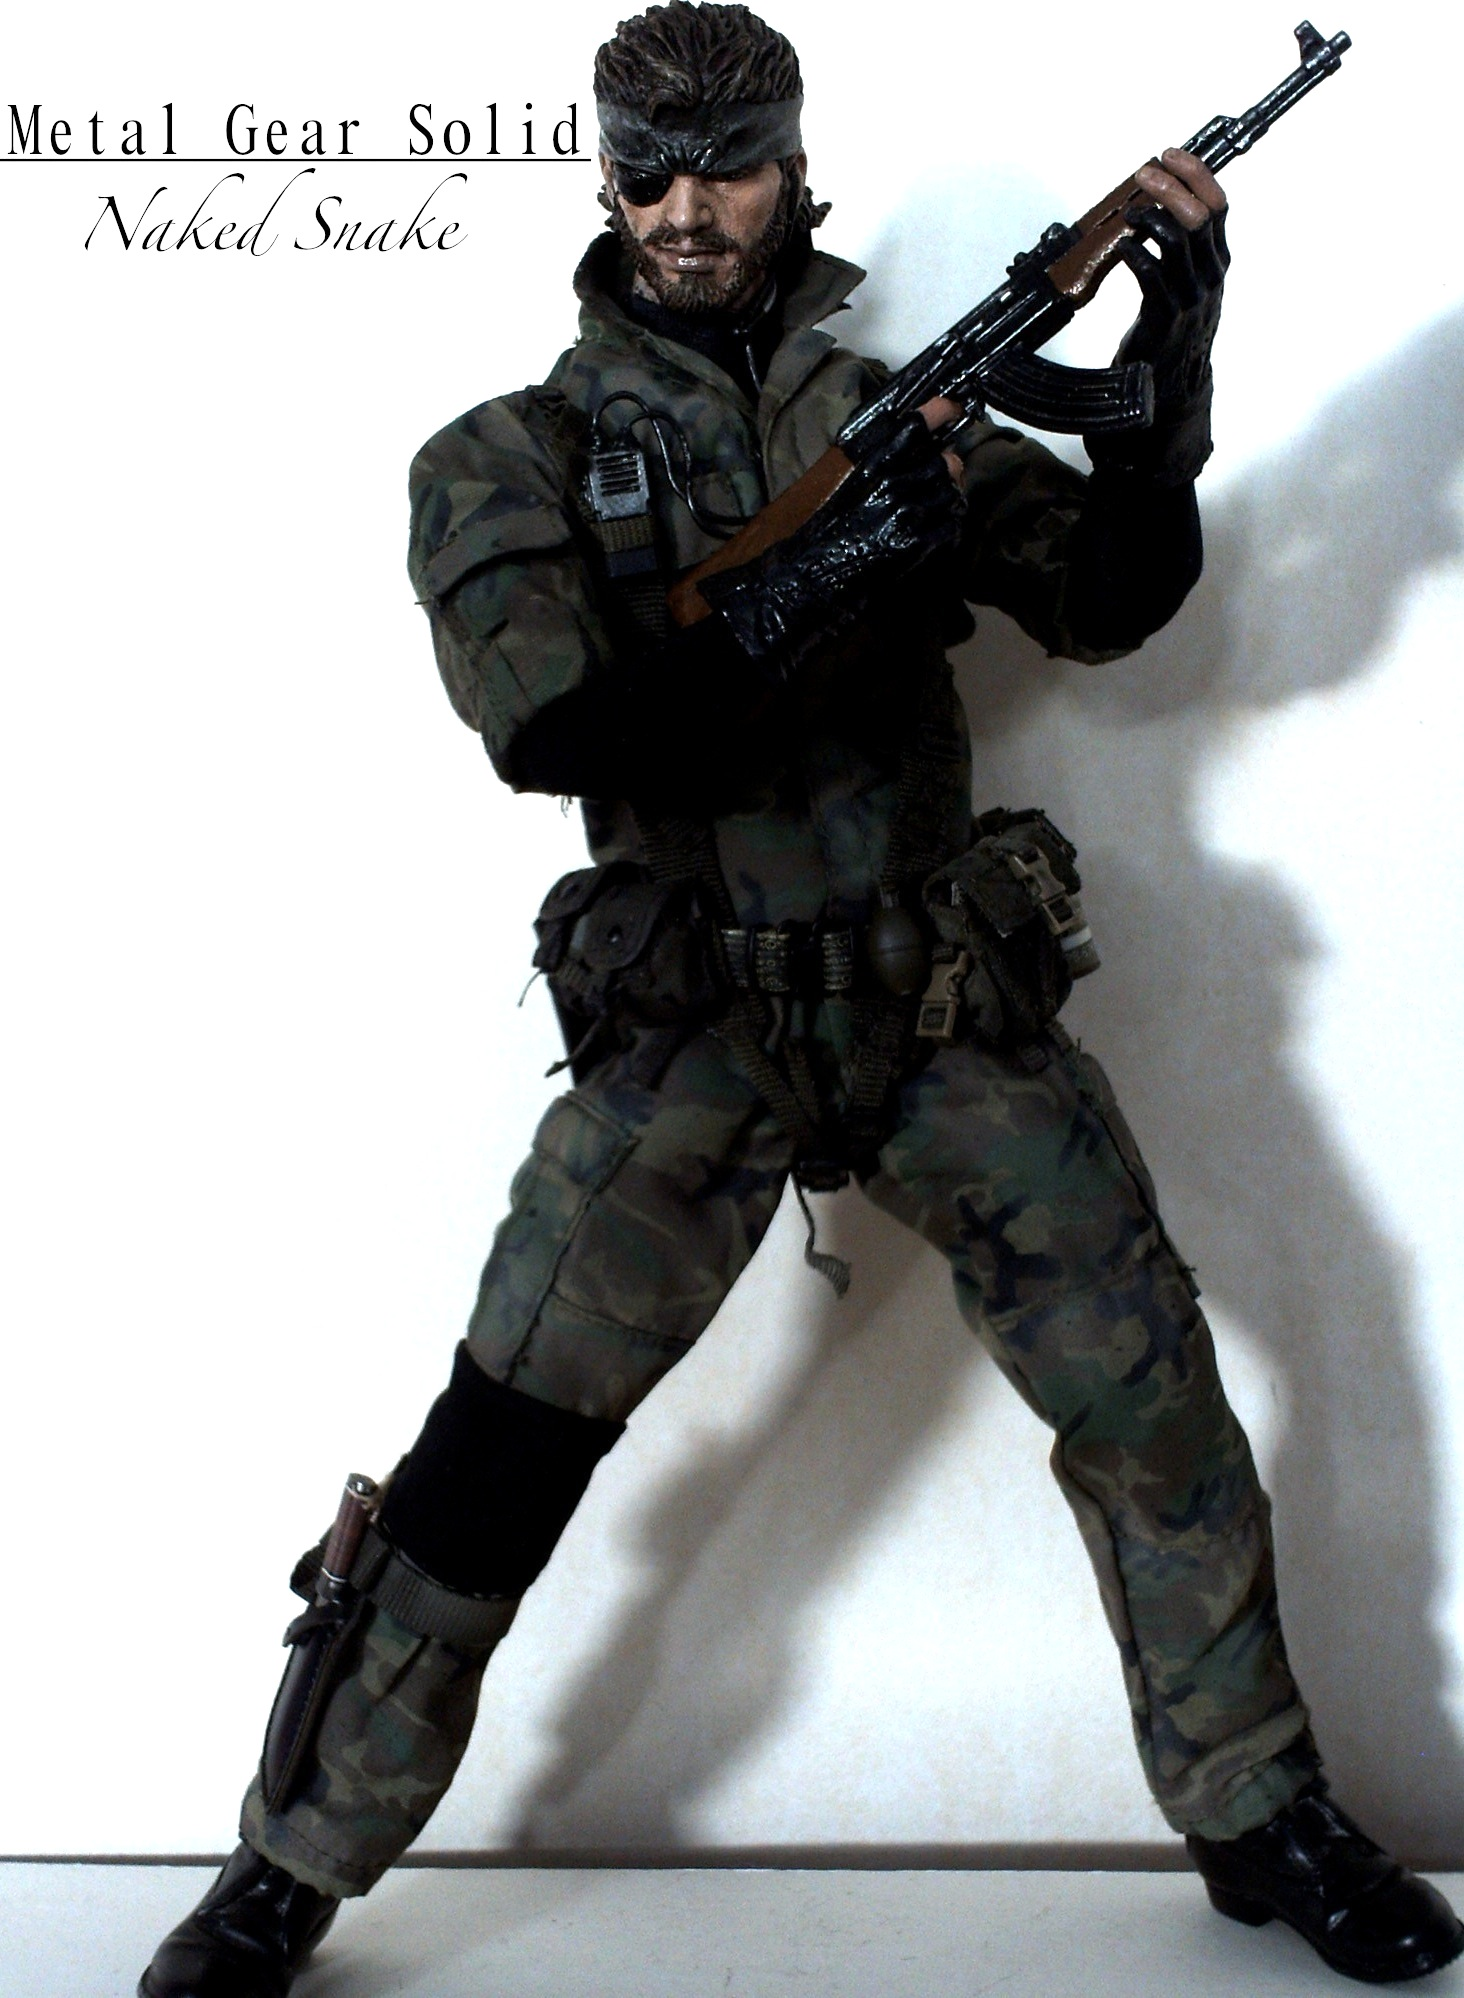 Metal Gear Solid - Naked Snake with AK-47 by